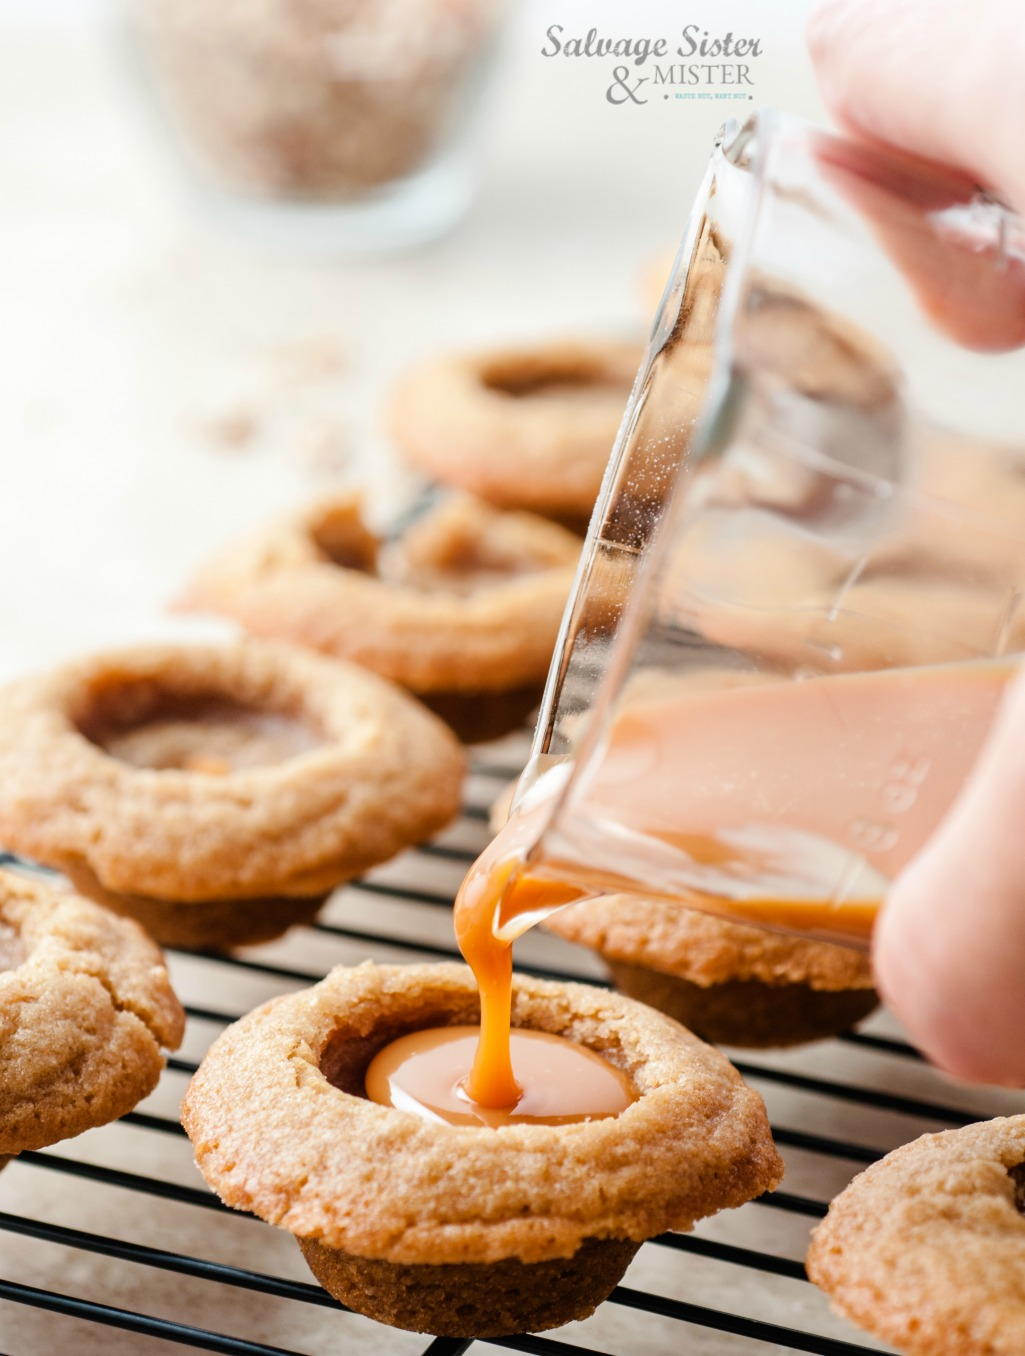 Filling brown sugar cookie cups with caramel for these tasty treats. Great for a cookie exchange or with your favorite coffee or tea. Give as a gift. Add chocolate and nuts for a turtle cookie cup version. Get recipe on salvagesisterandmister.com